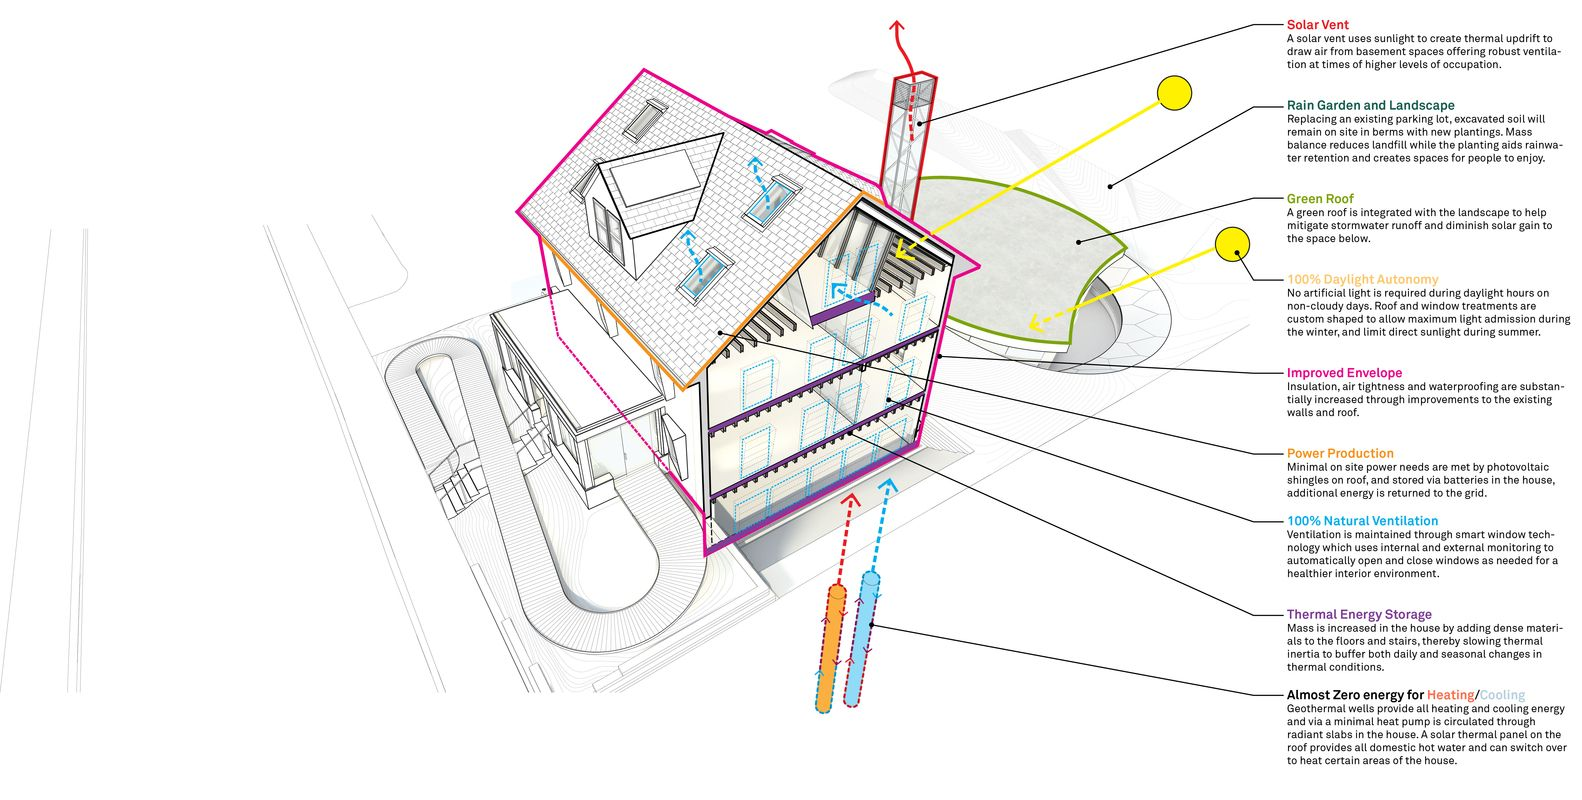 gallery of harvard housezero - a retrofit response to climate change - 2 |  green building, green architecture, energy efficient buildings  pinterest